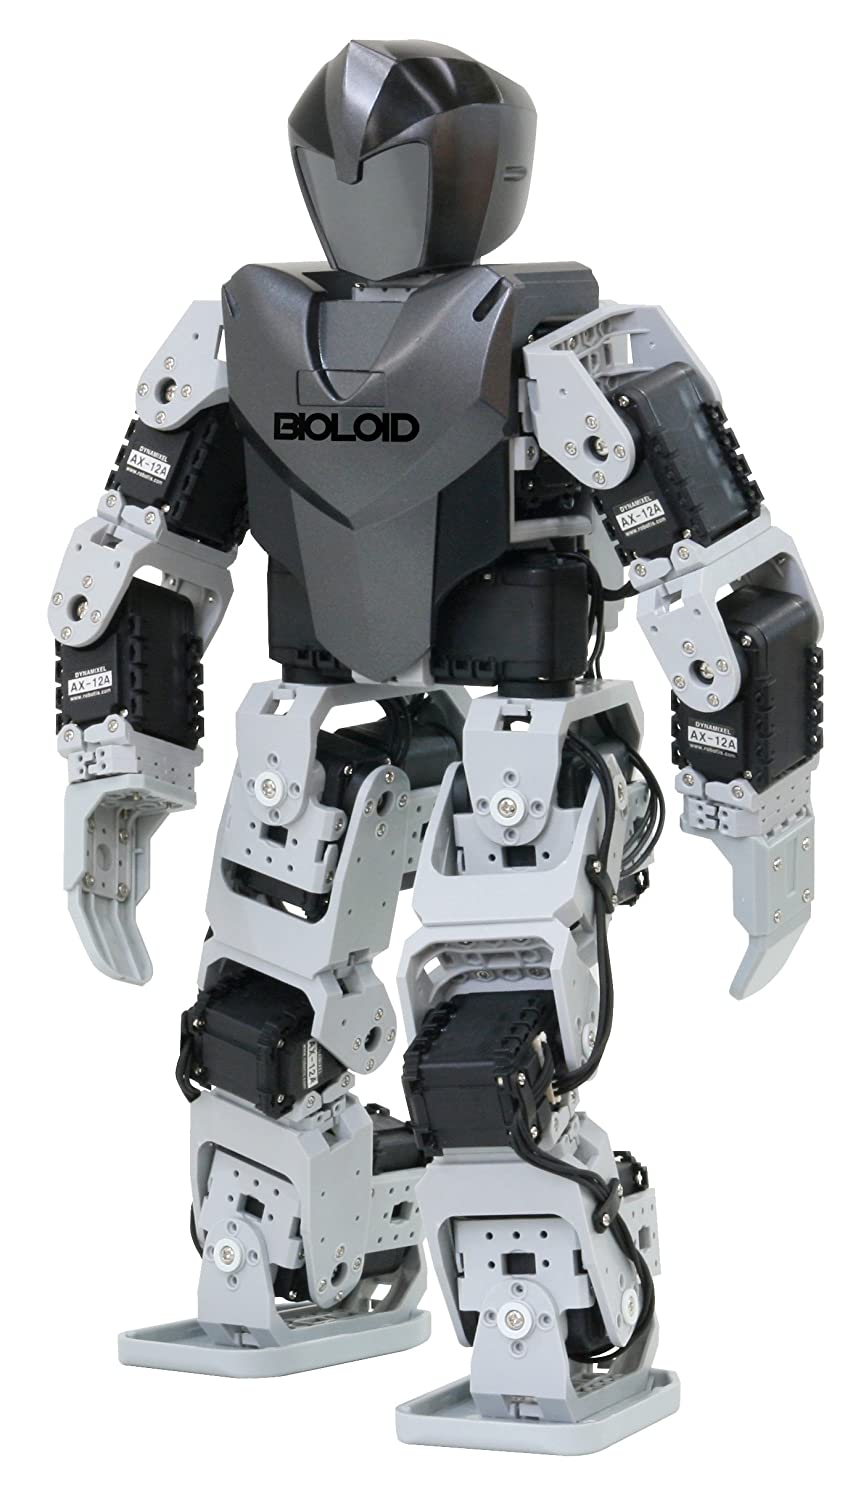 Amazon.com: ROBOTIS BIODLOID PREMIUM: Toys \u0026 Games